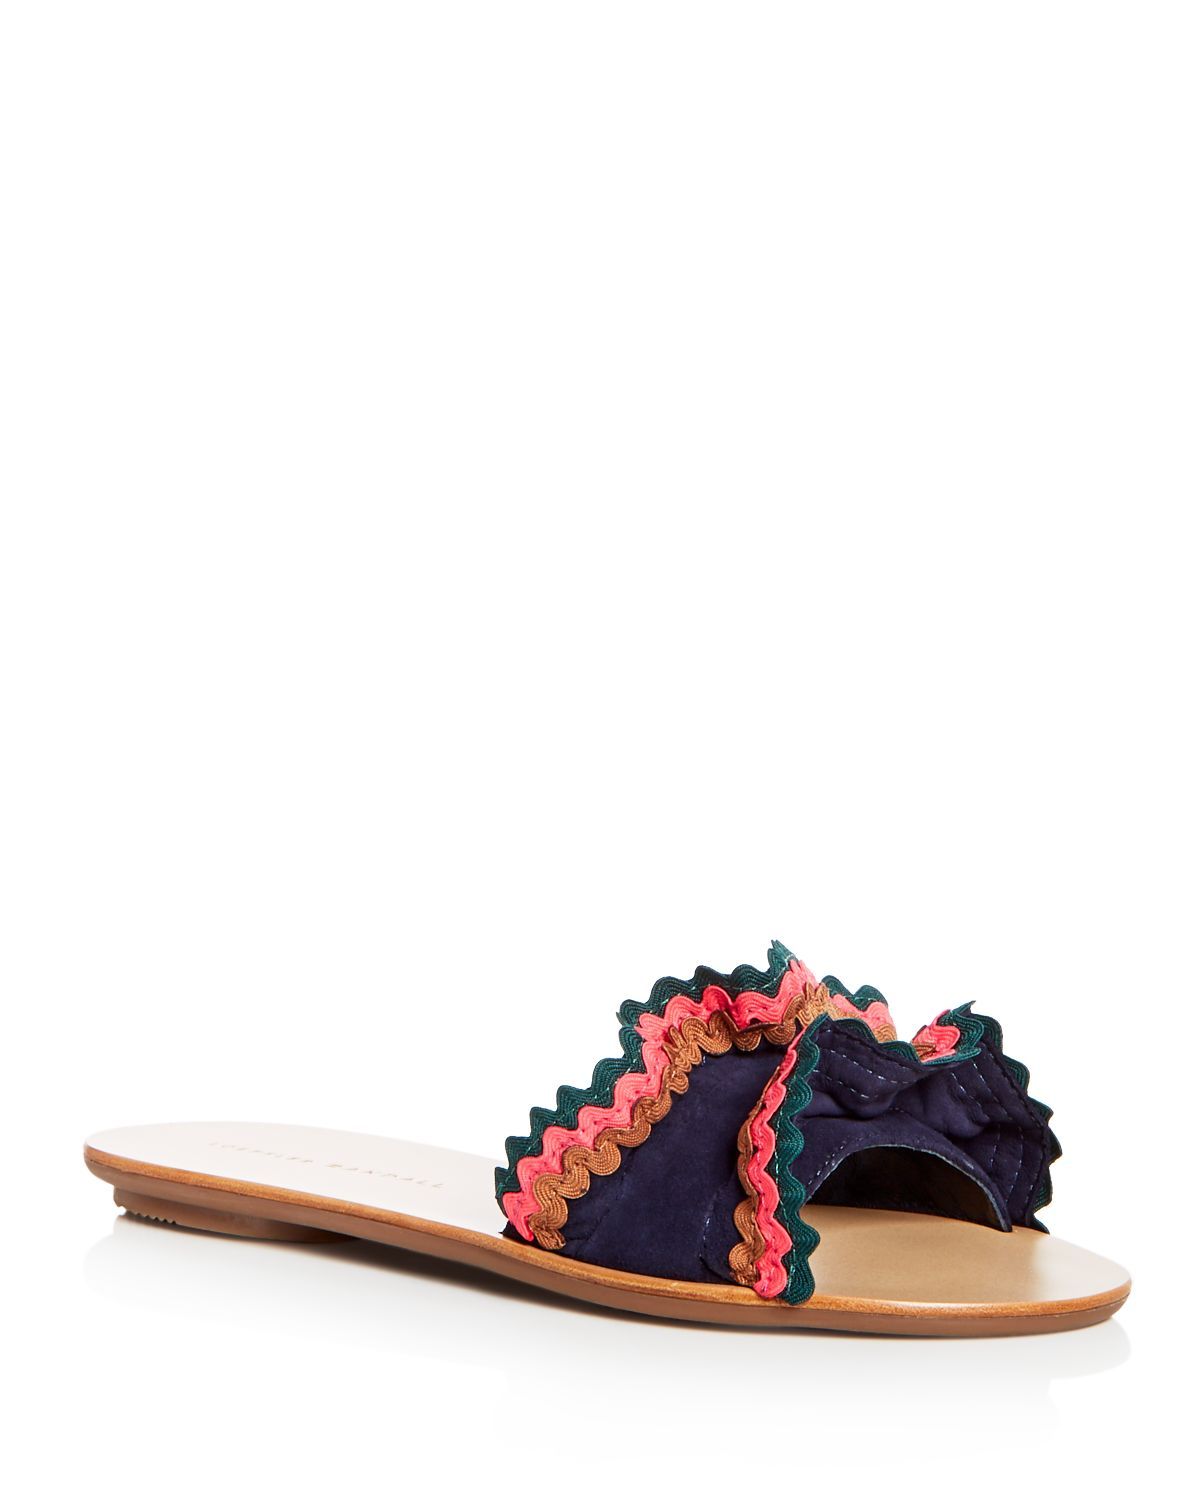 Loeffler Randall Women's Birdie Suede Ruffle Slide Sandals - 100% Exclusive